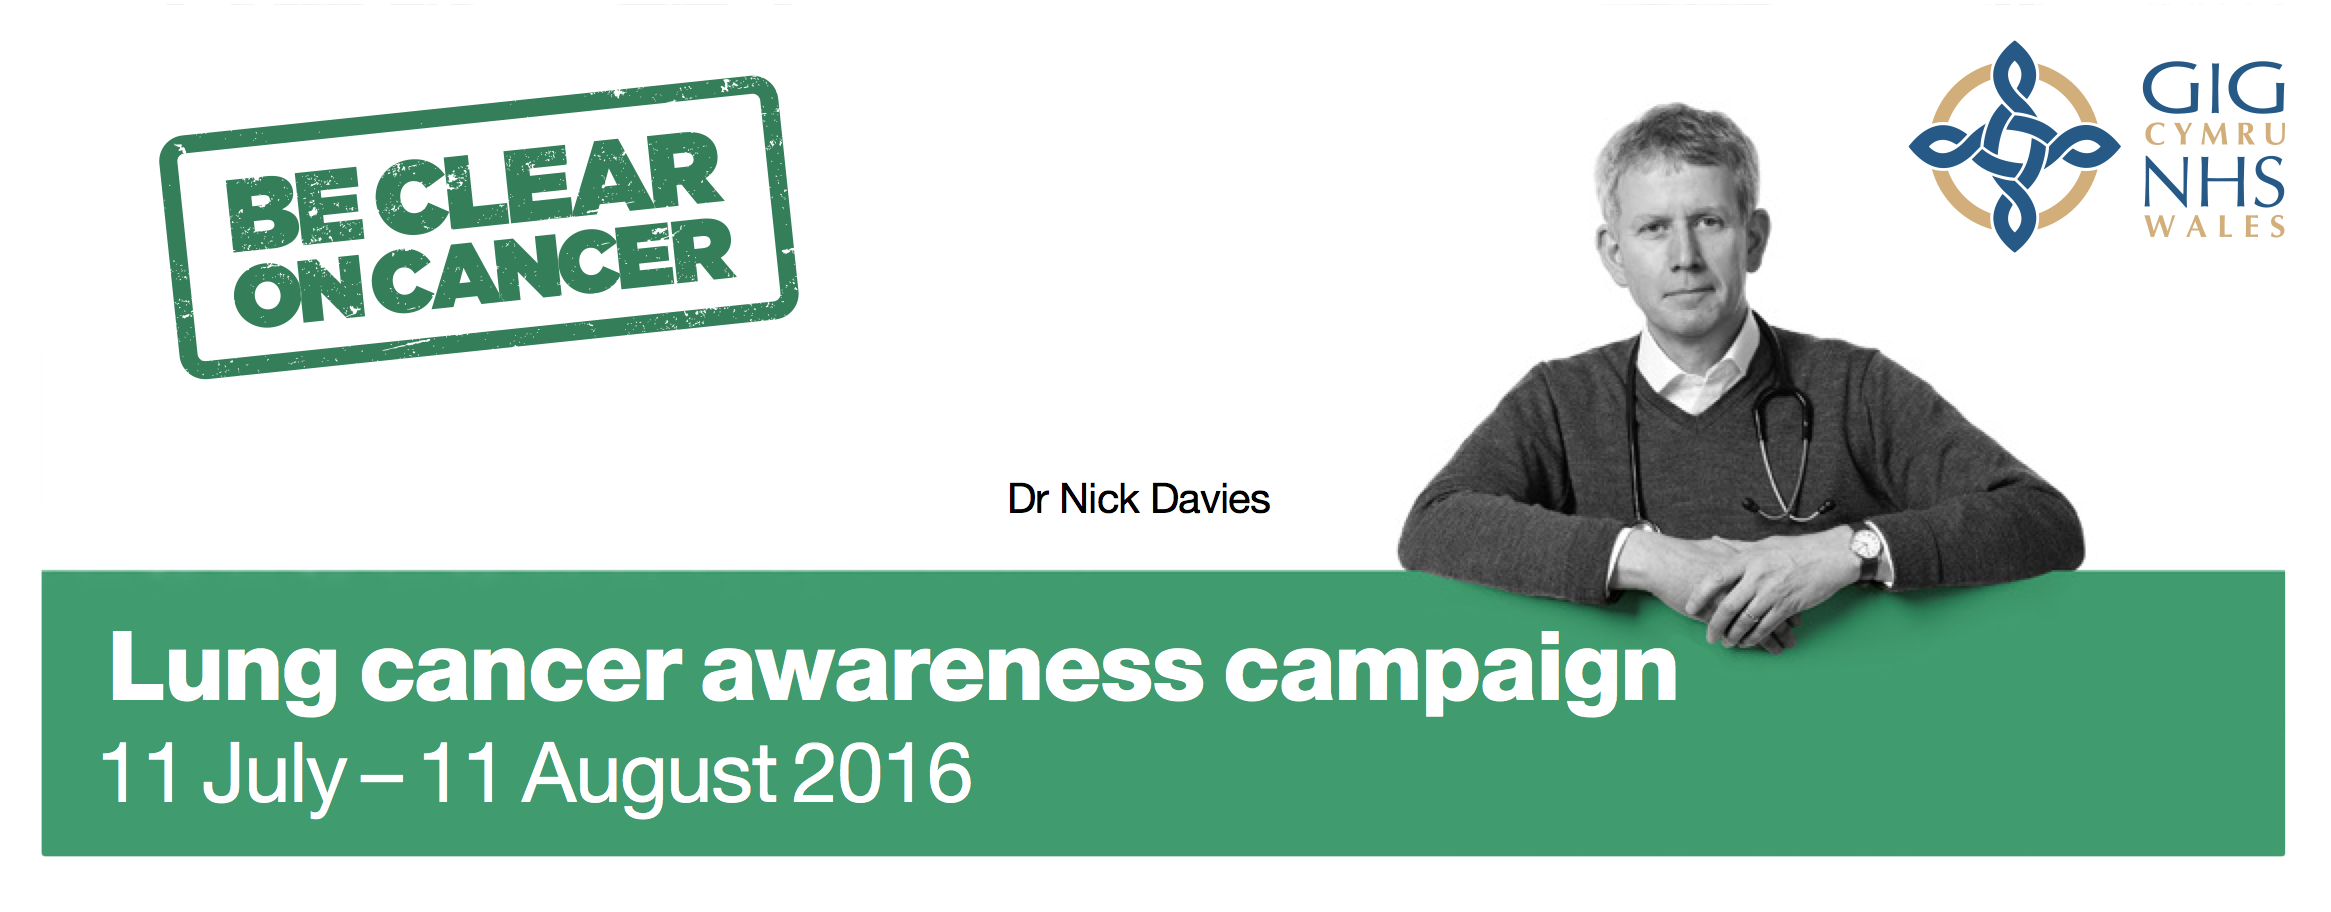 importance of awareness campaigns